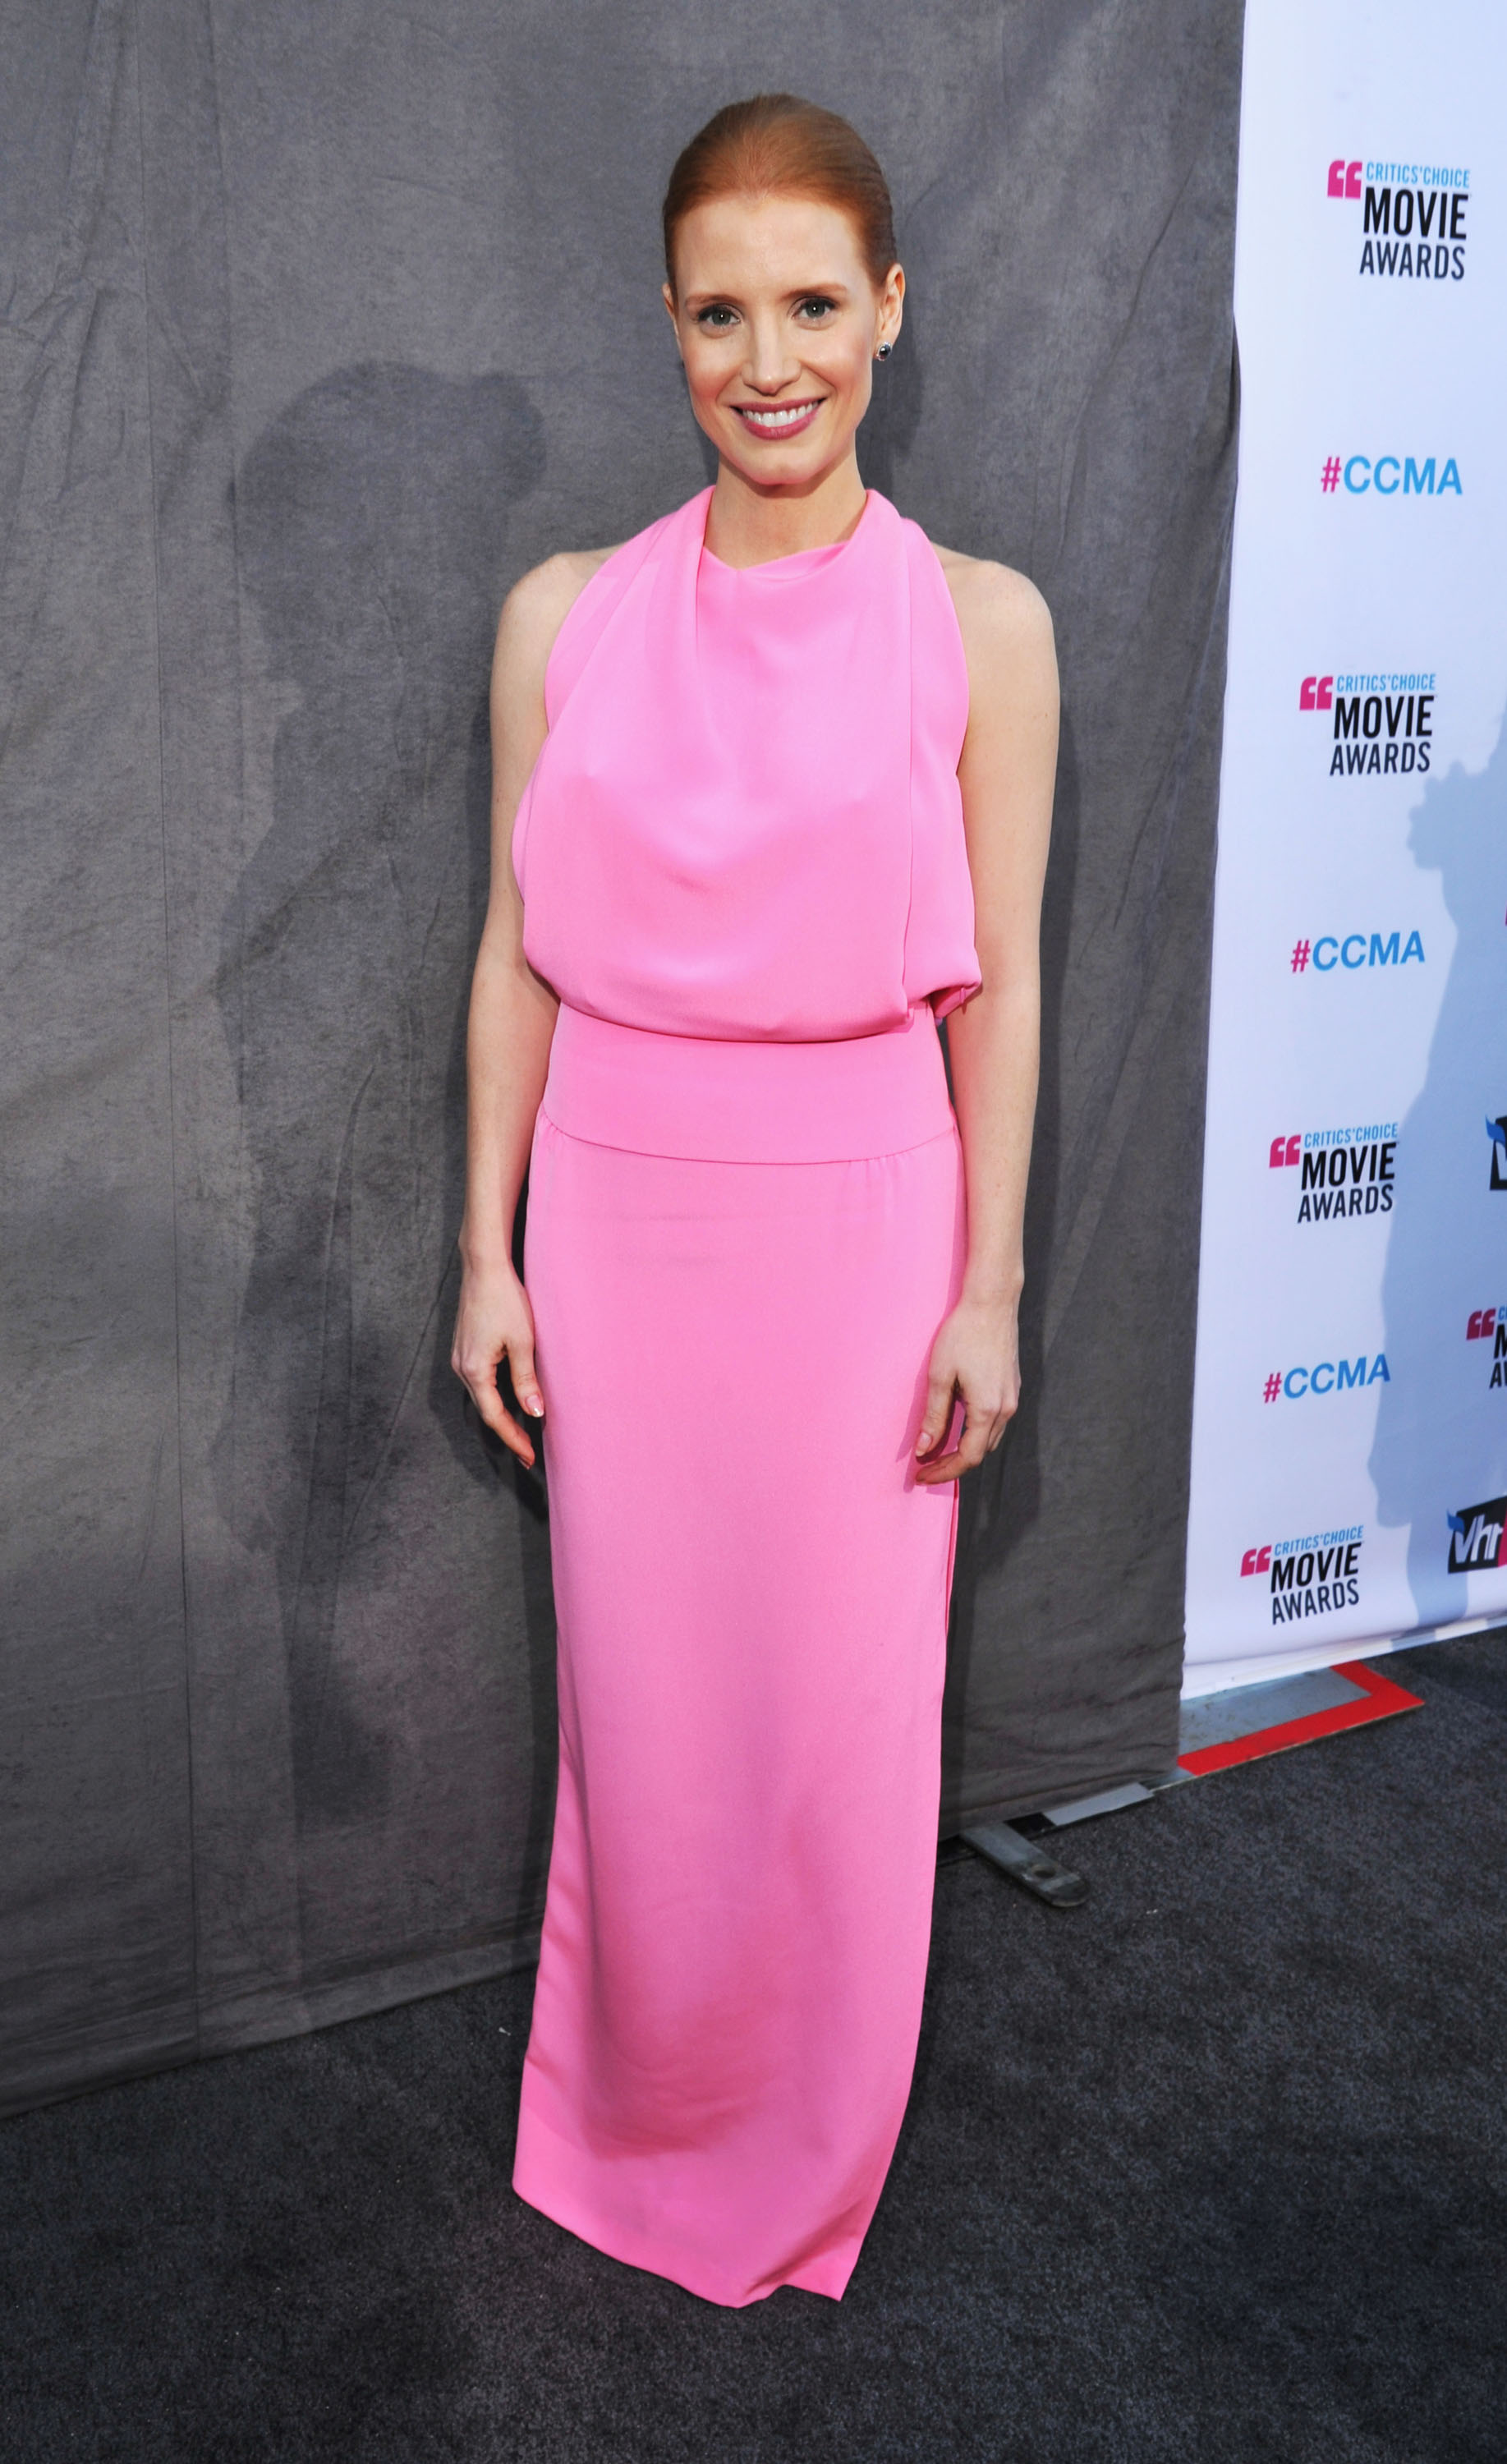 Jessica Chastain was in a pink dress at the 2012 Critics' Choice Movie Awards.